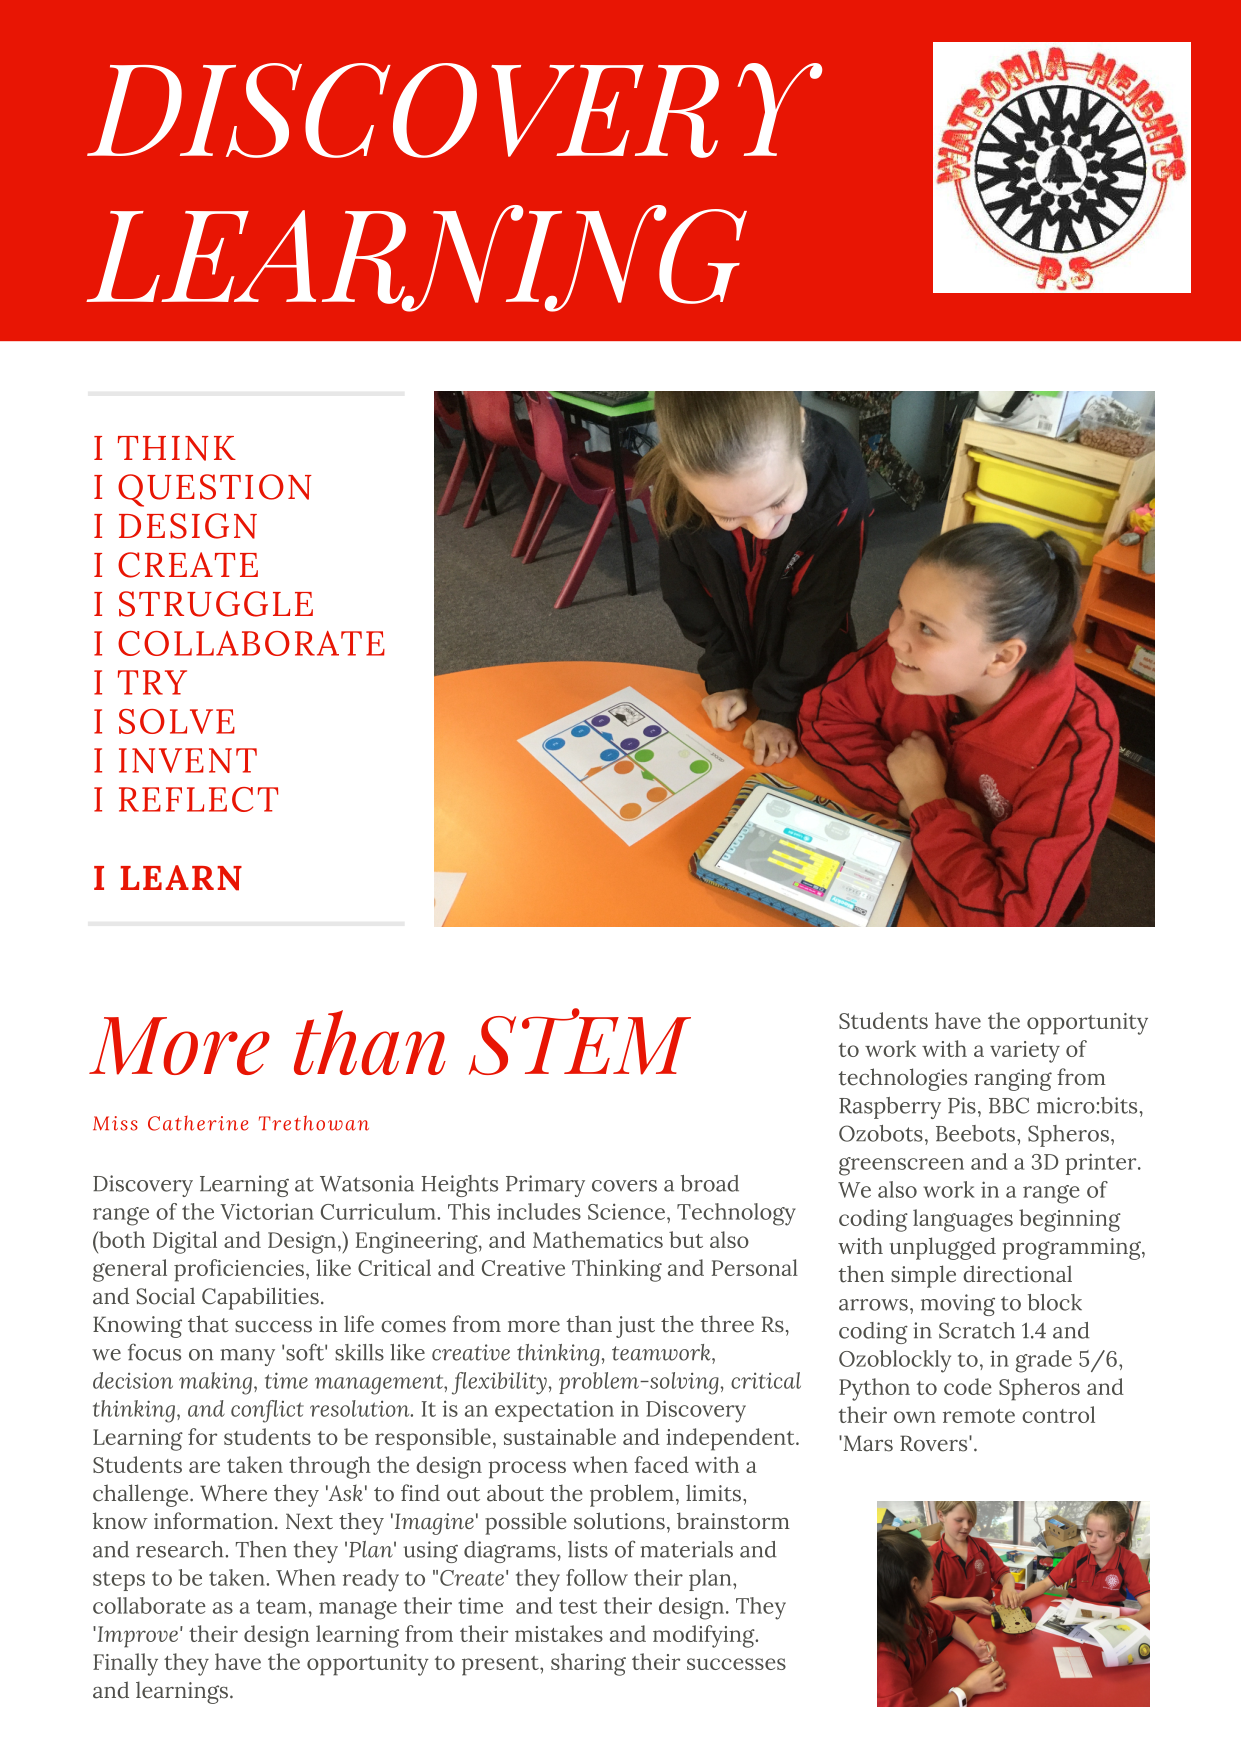 Discovery Learning blurb